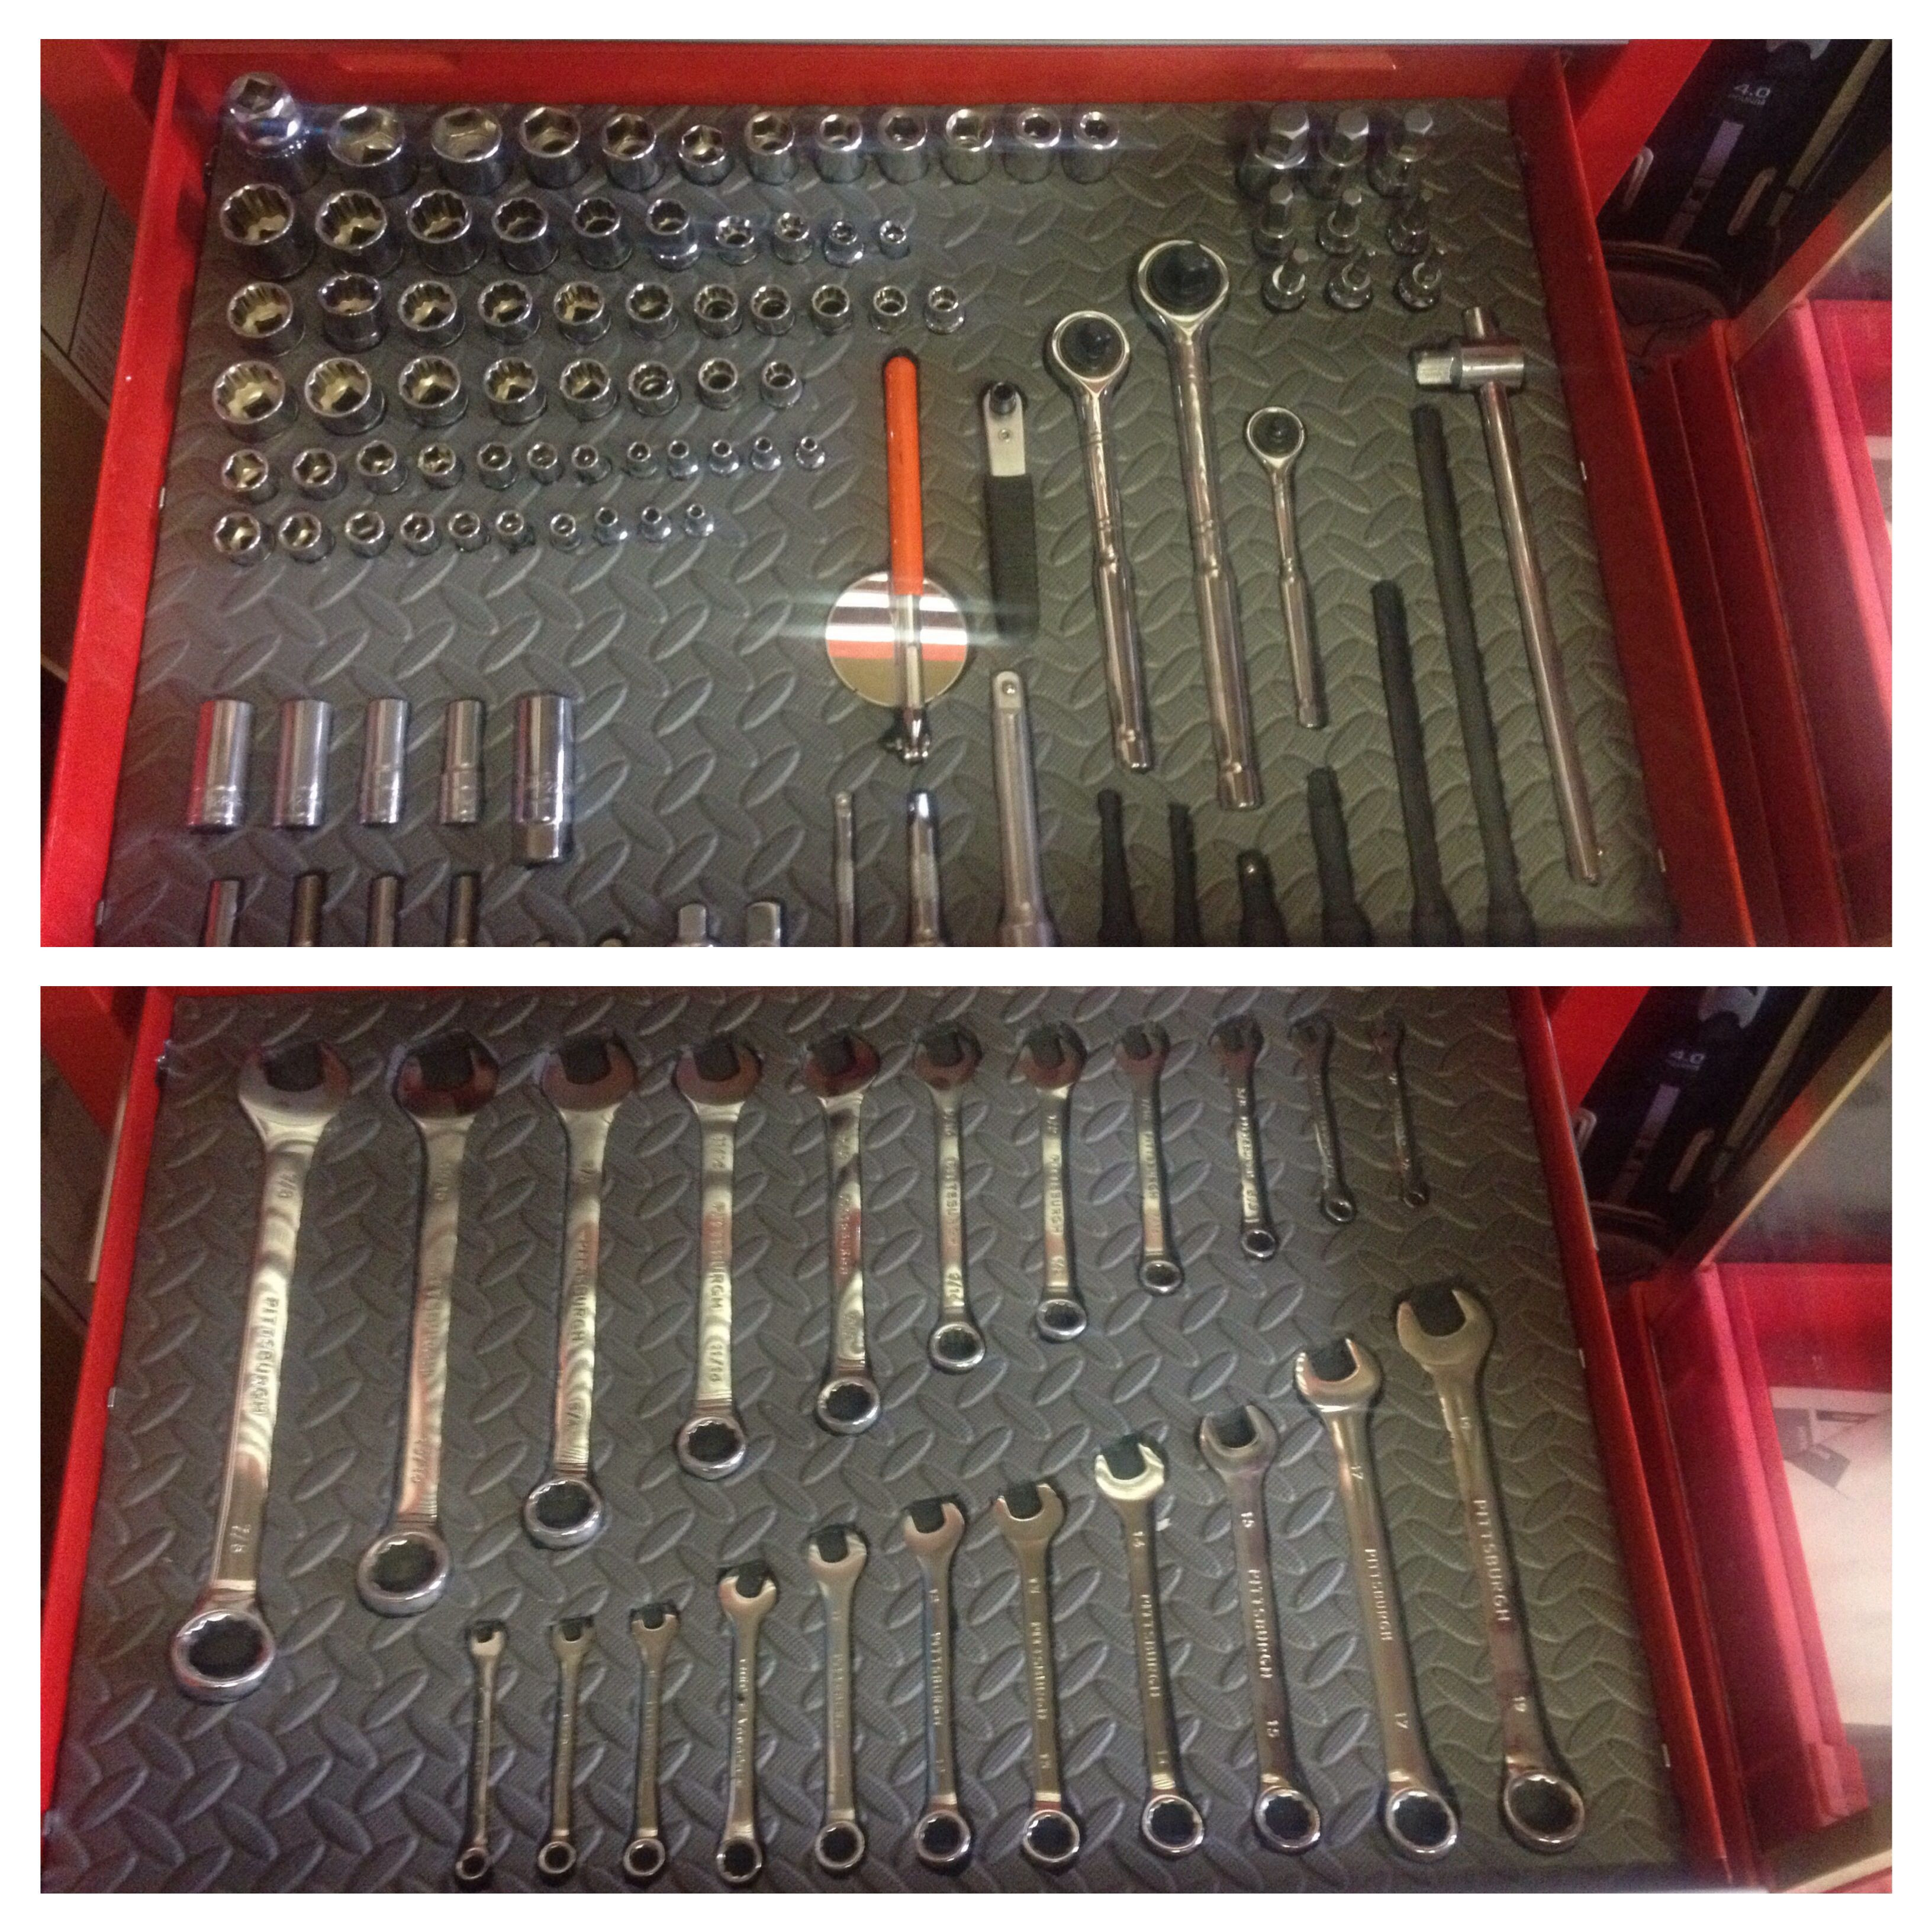 Best ideas about Foam Tool Organizer DIY . Save or Pin Made my own shadowed tool box using a hot knife and foam Now.